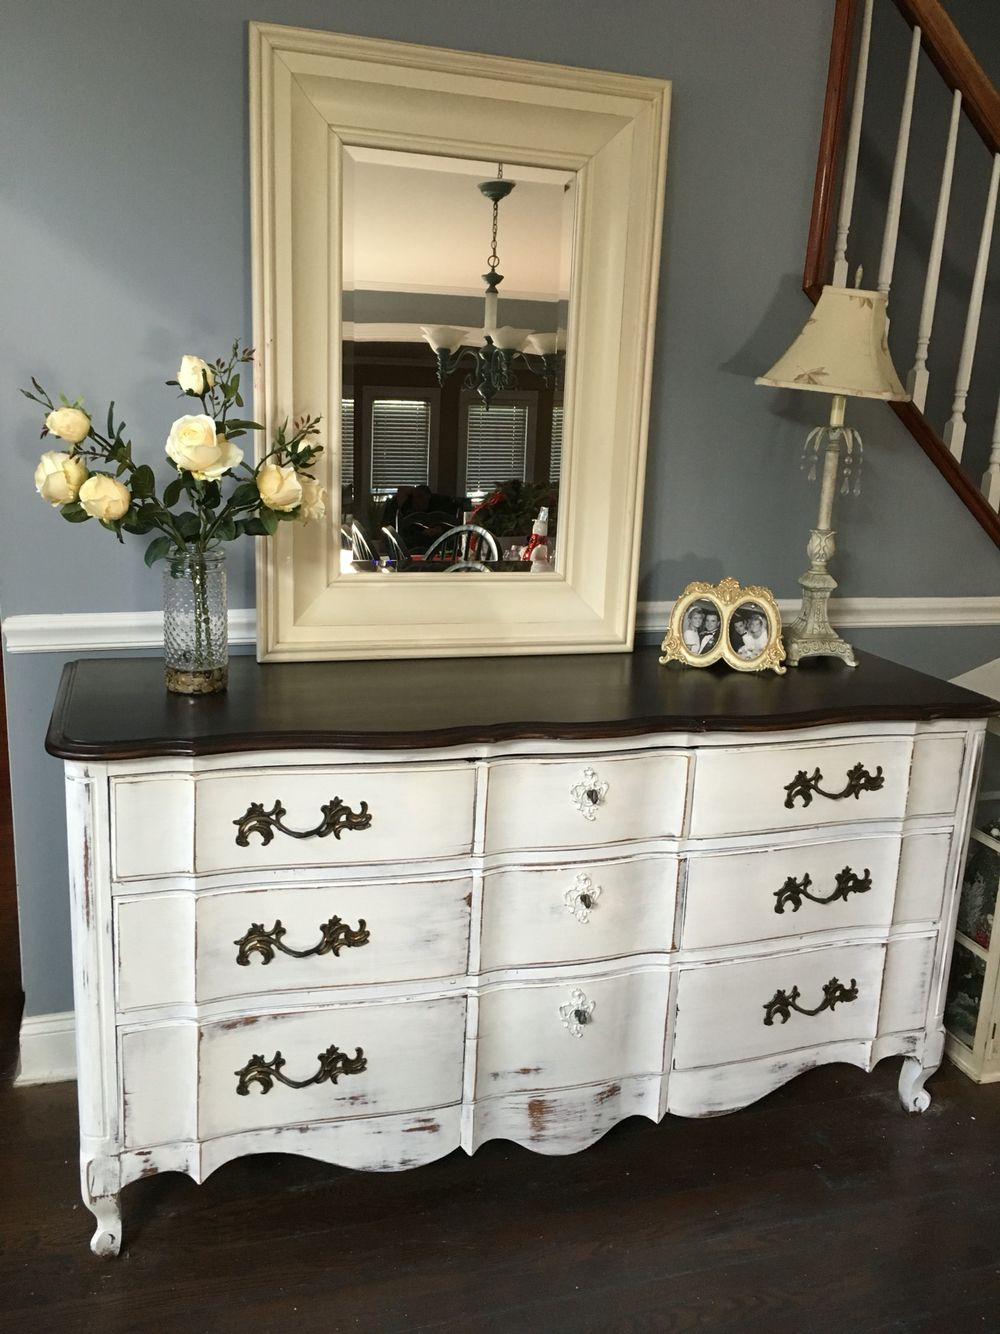 French Provincial Dresser Old White Chalk Paint Distressed White Bedroom Furniture Refurbished Furniture Diy Refurbished Furniture